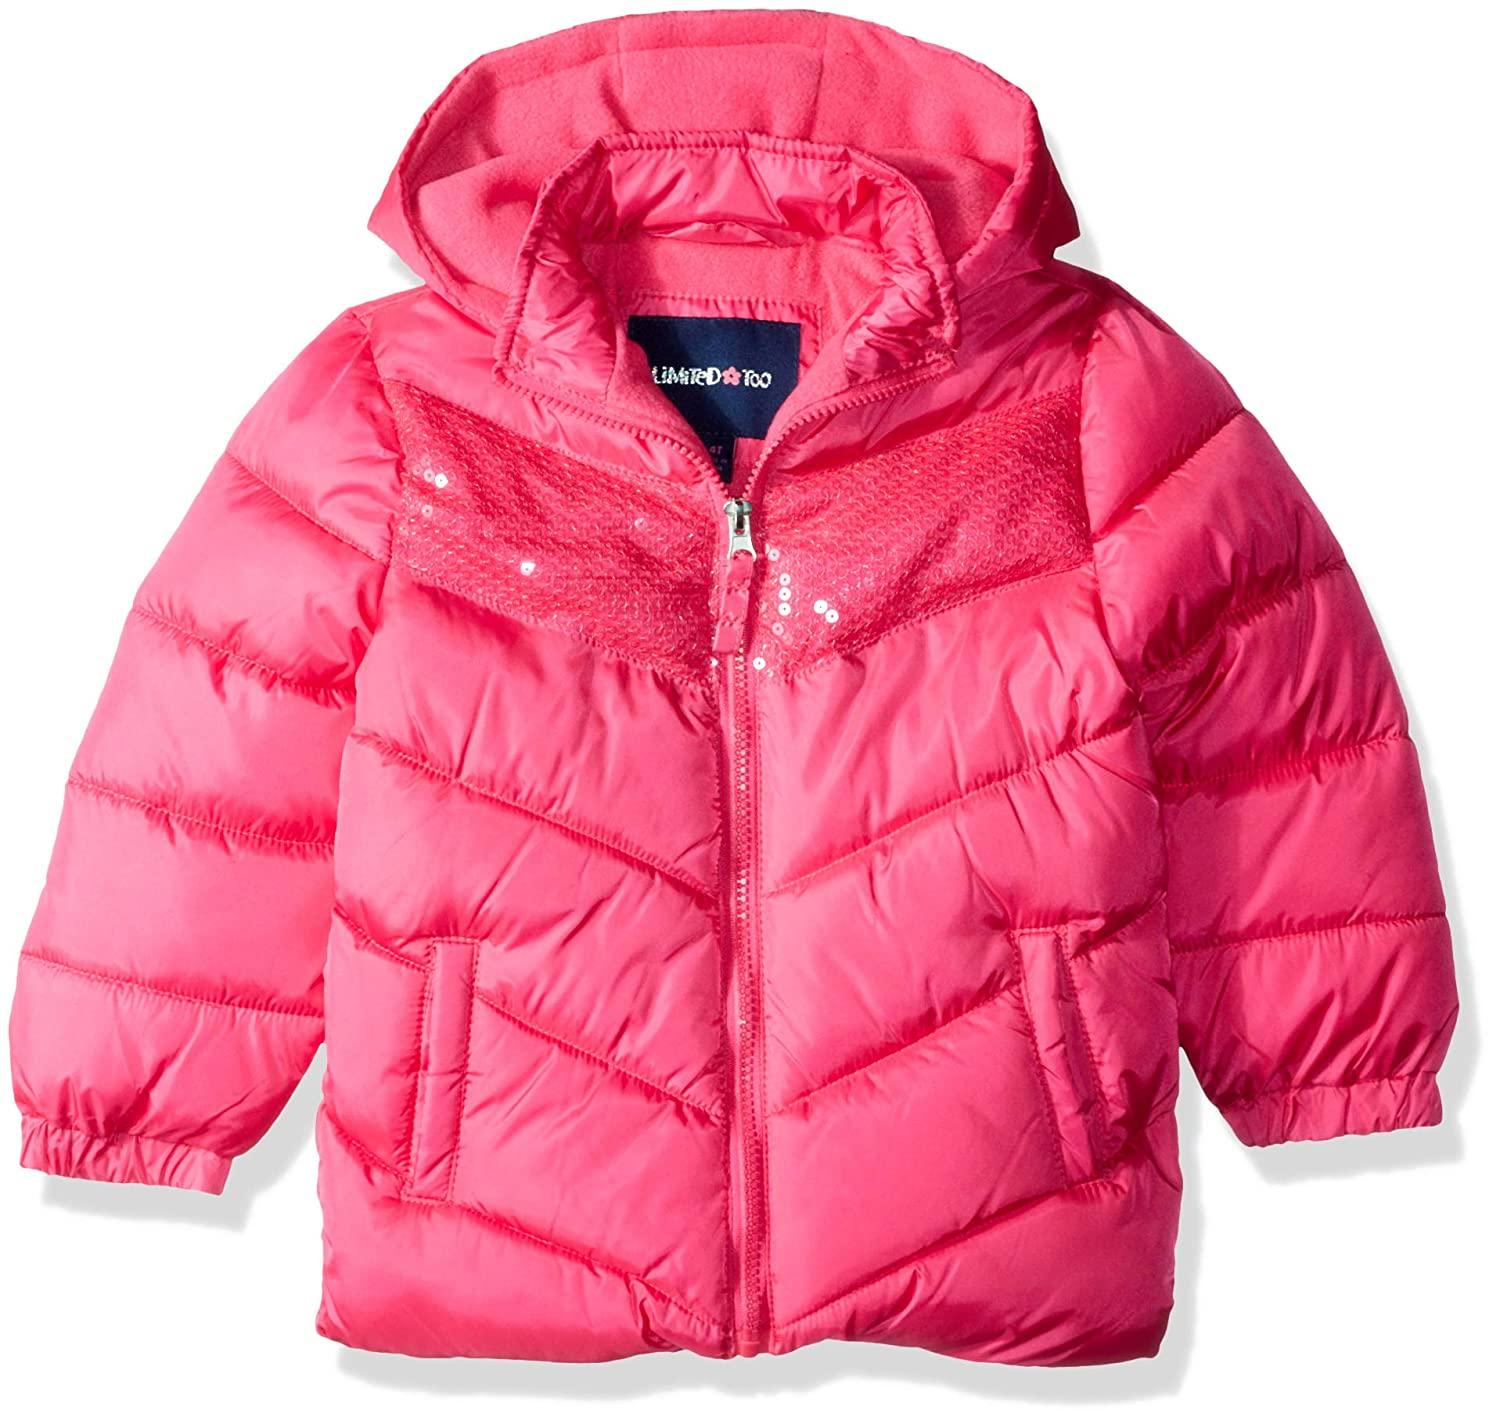 Limited Too Girls Handstuffed Puffer Jacket with Sequins